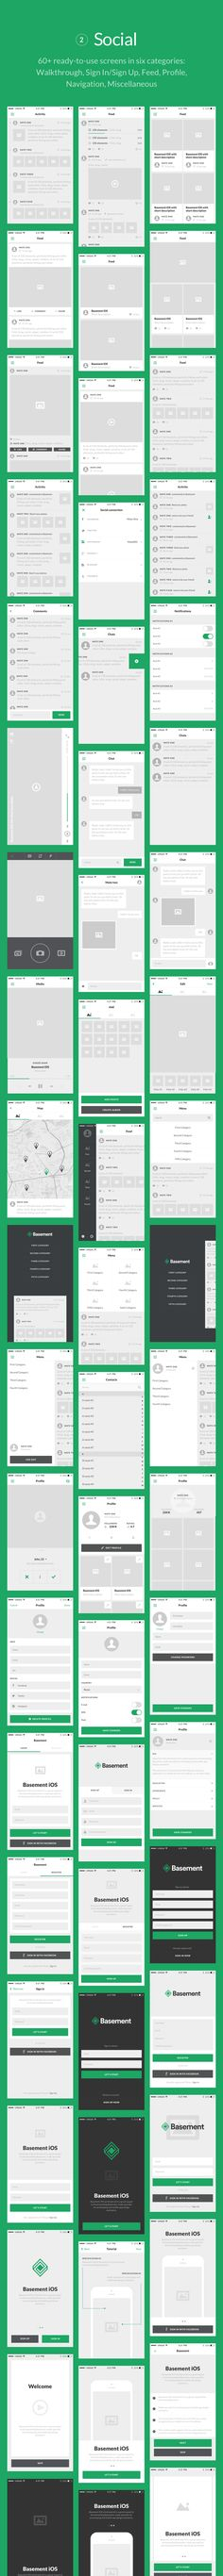 Basement iOS Wireframe Kit - 110+ App Screens for Sketch